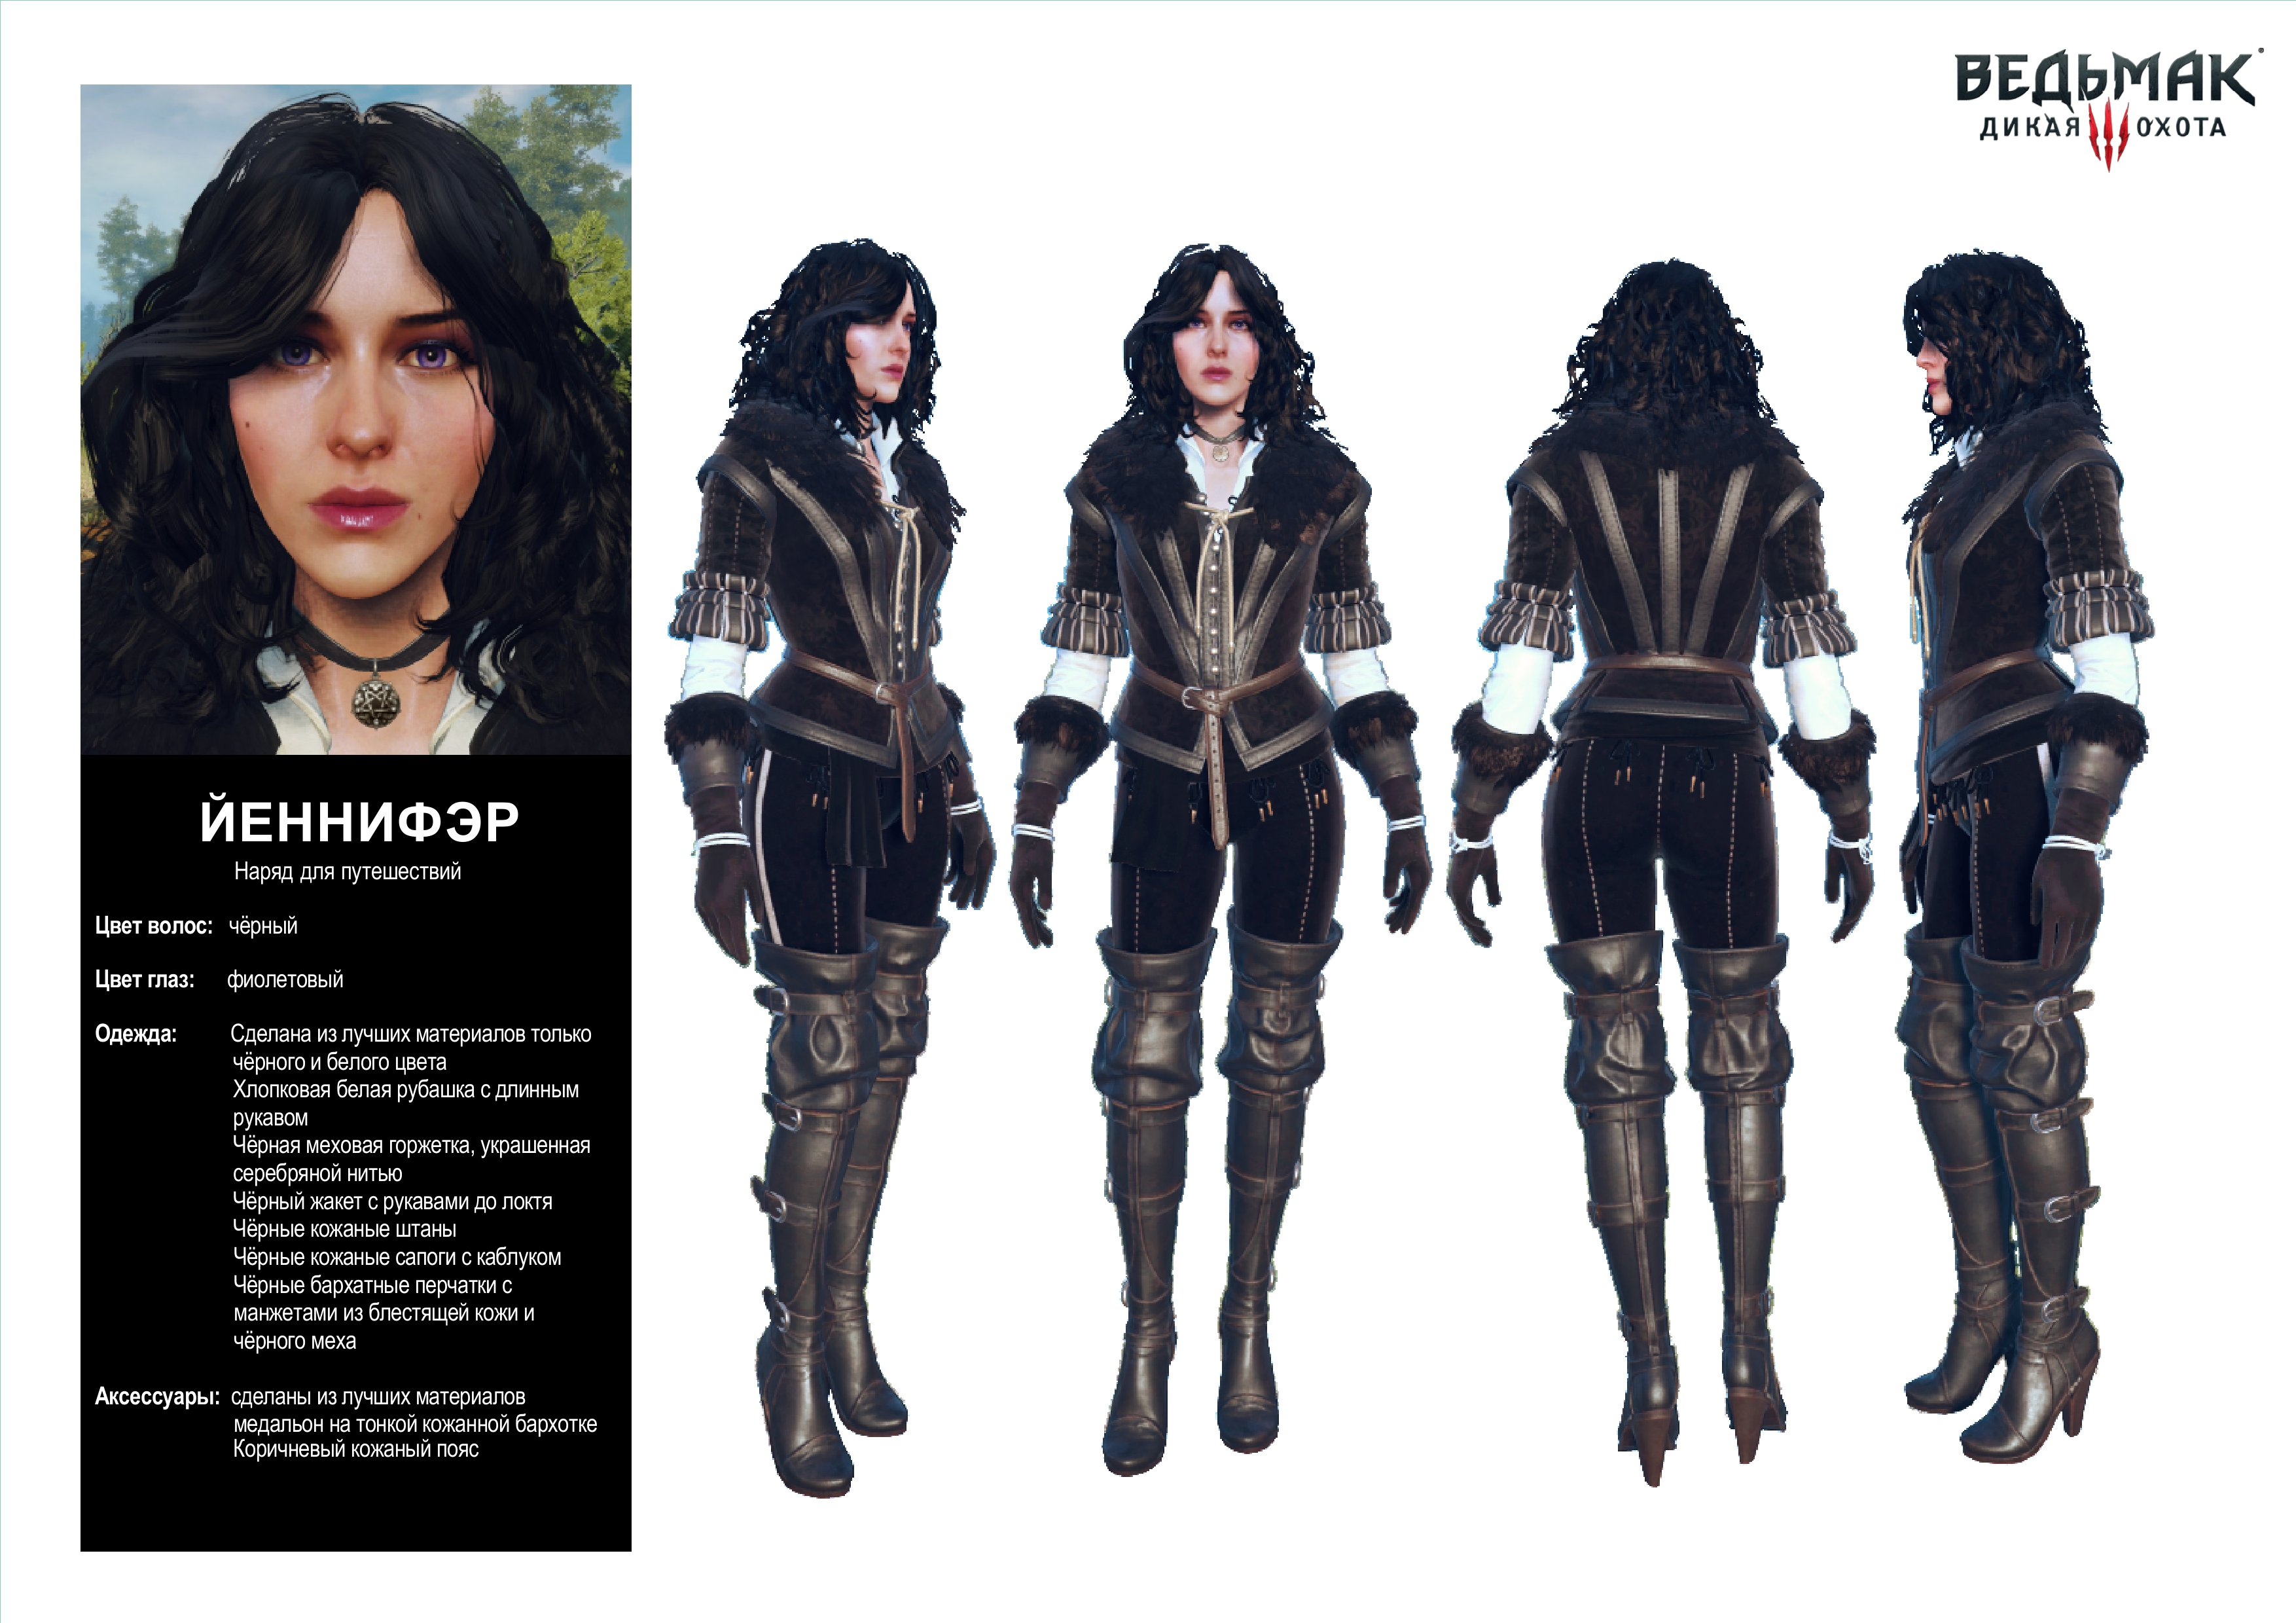 Yennefer_cosplay_guide03-00.jpg